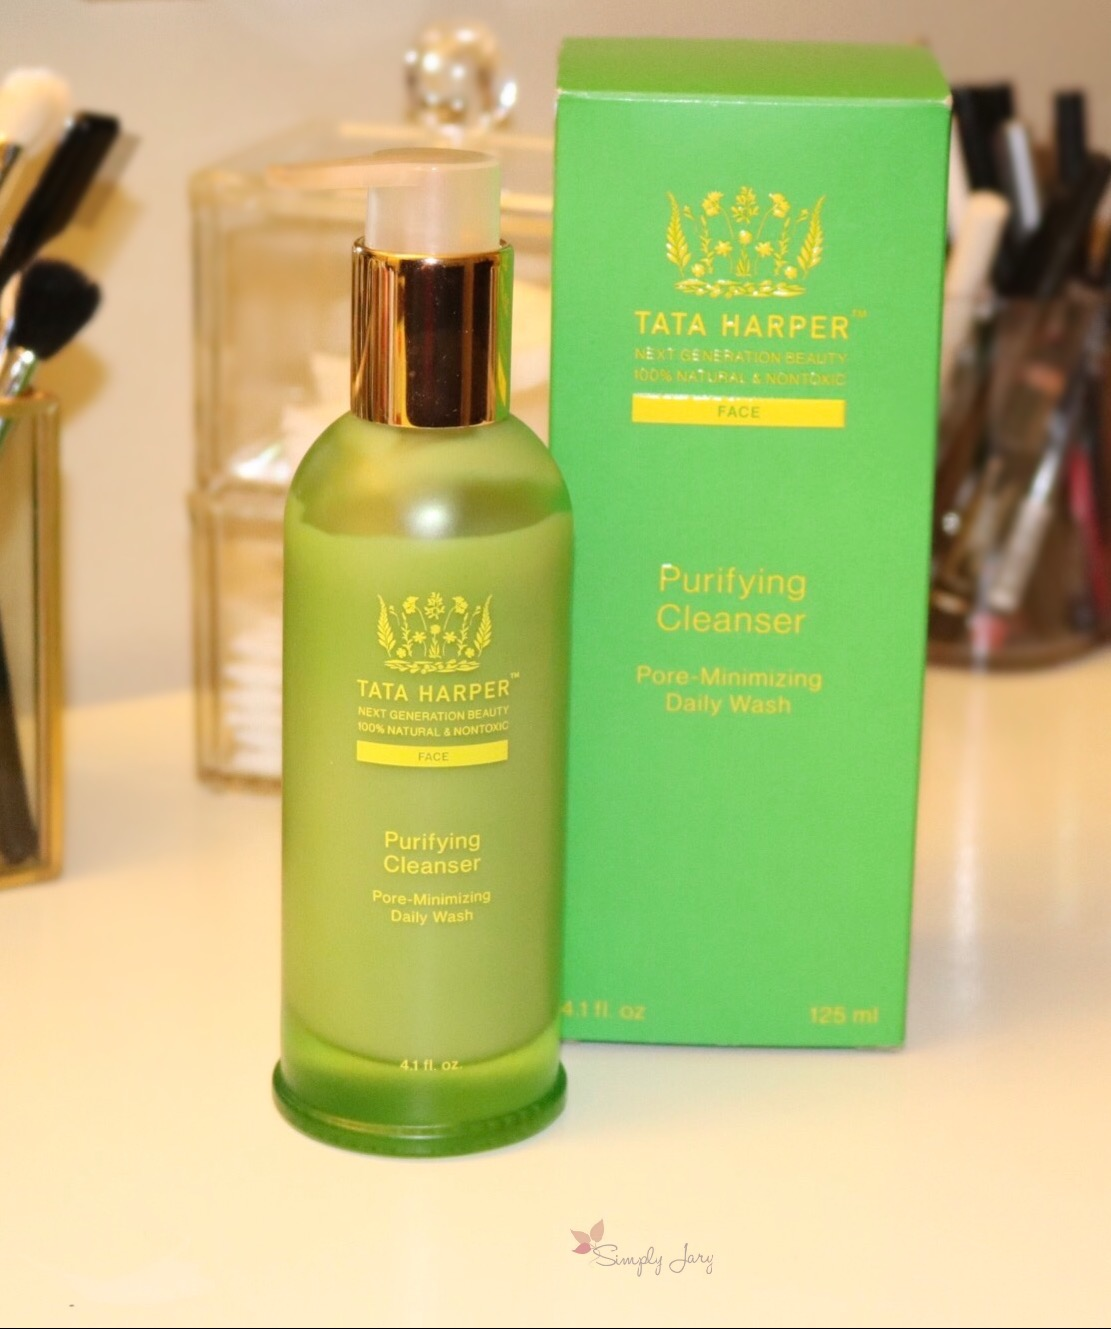 Purifying Cleanser by tata harper #20